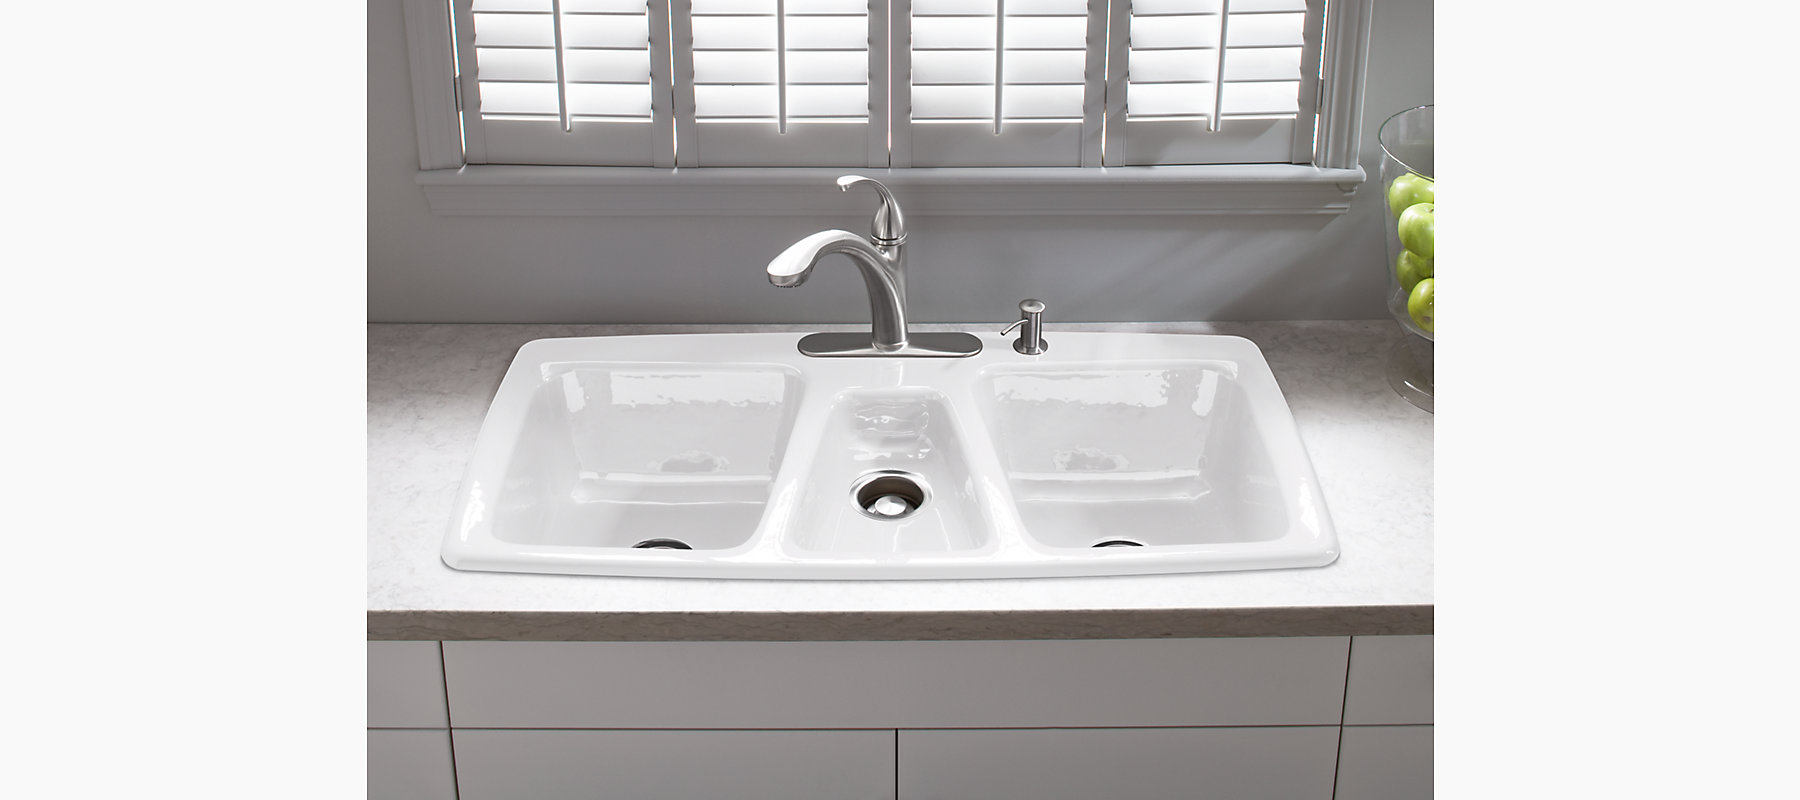 Americast Kitchen Sink Review